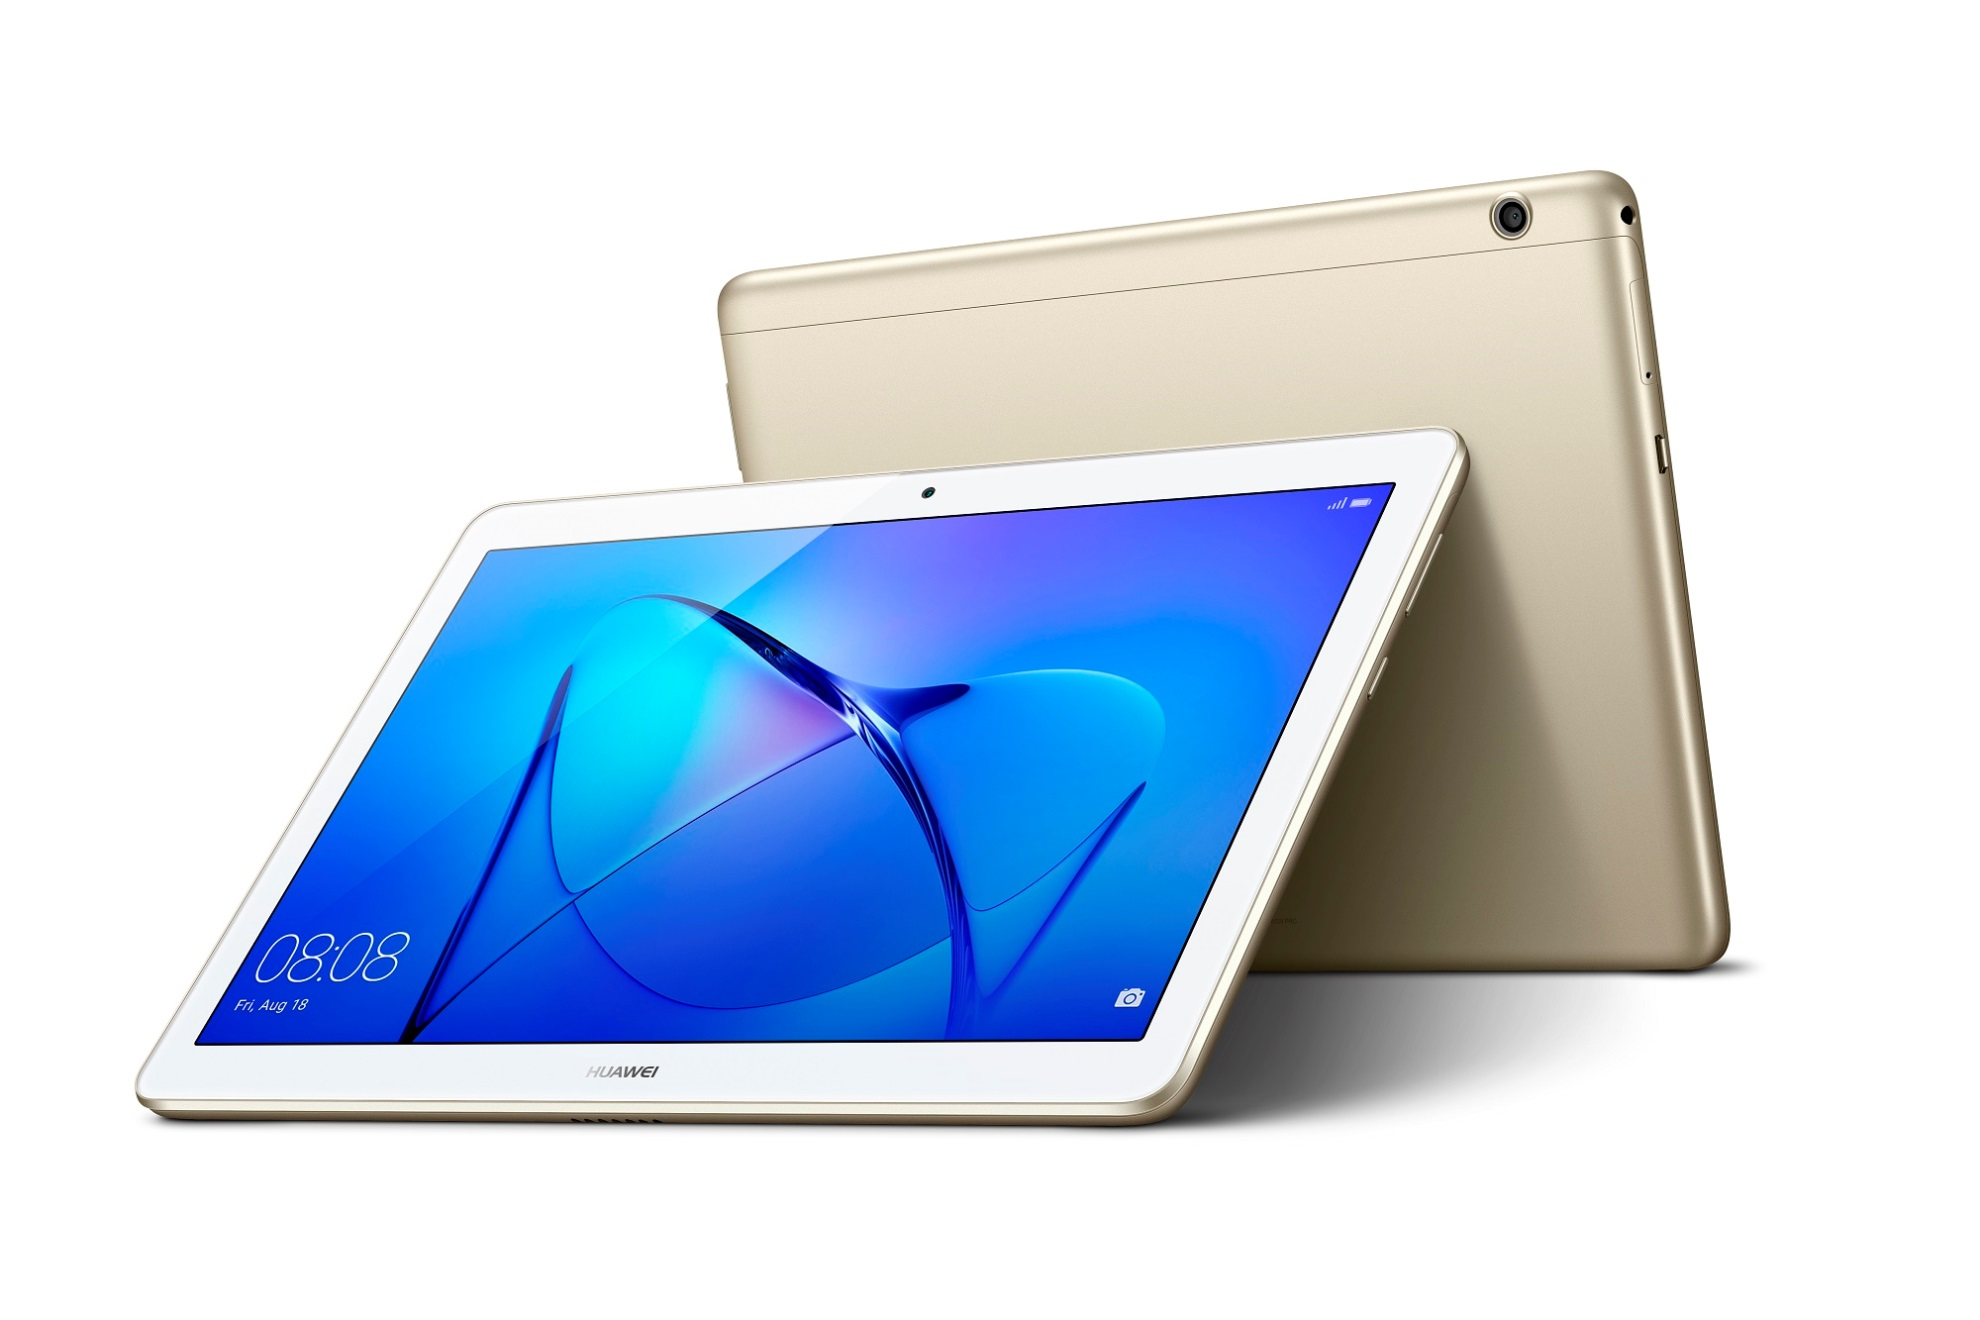 T3 10 Gold 1